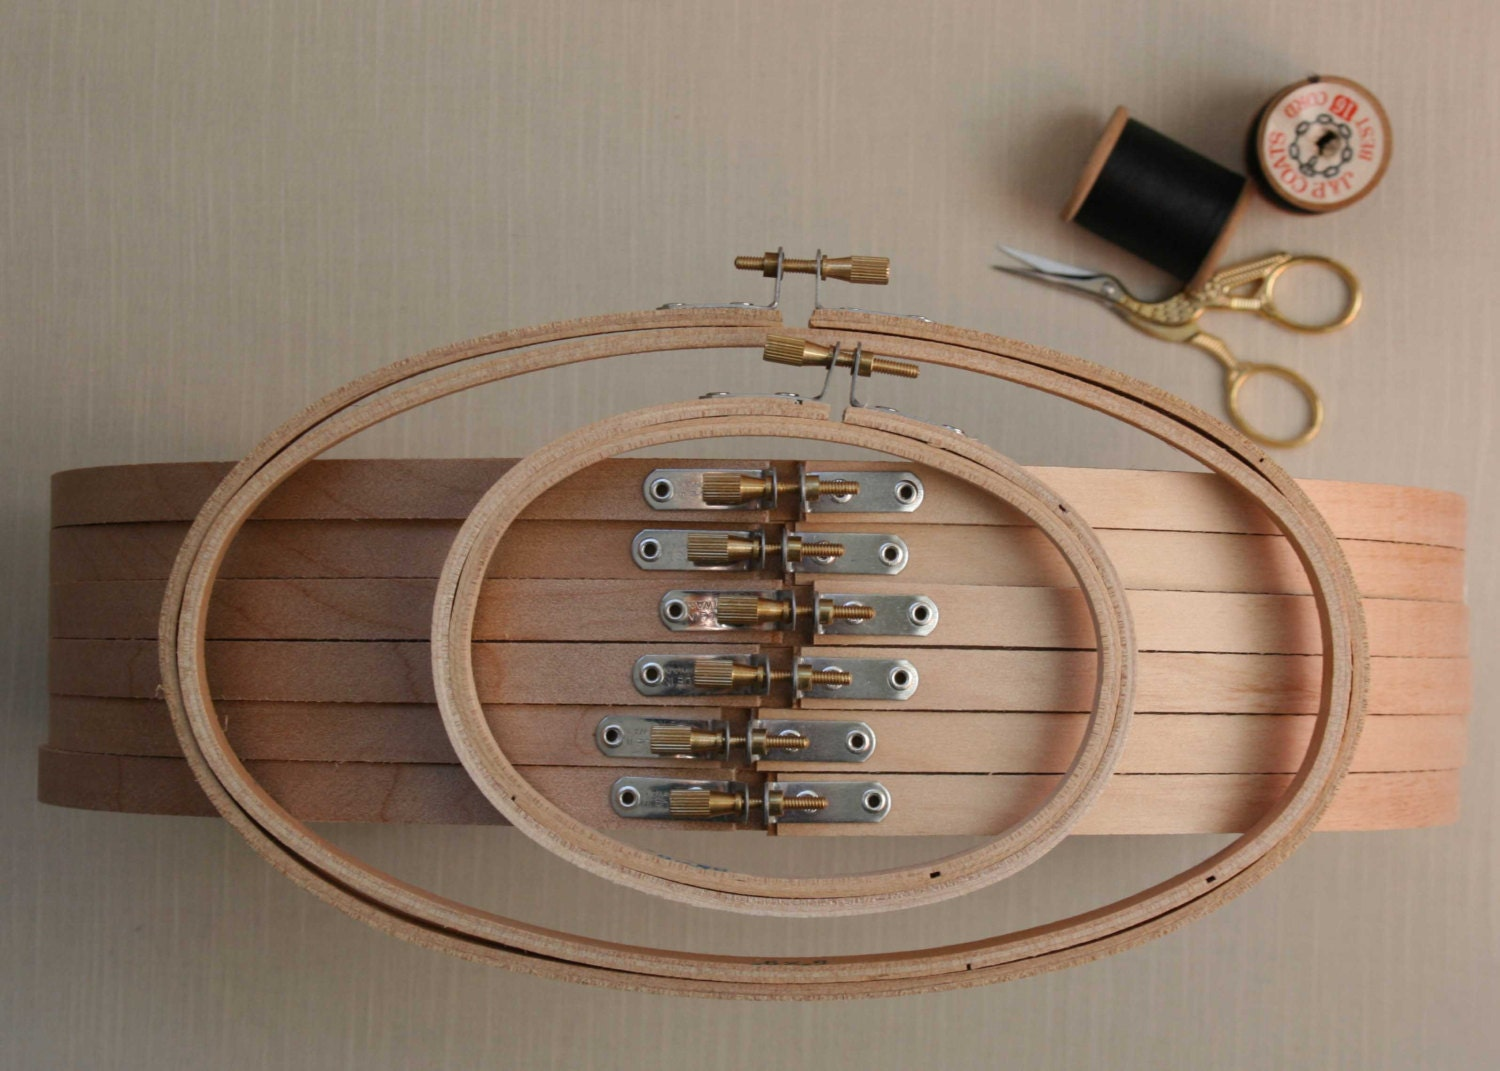 8 X 12 Inch Oval Embroidery Hoop Light Weight Wood. Large